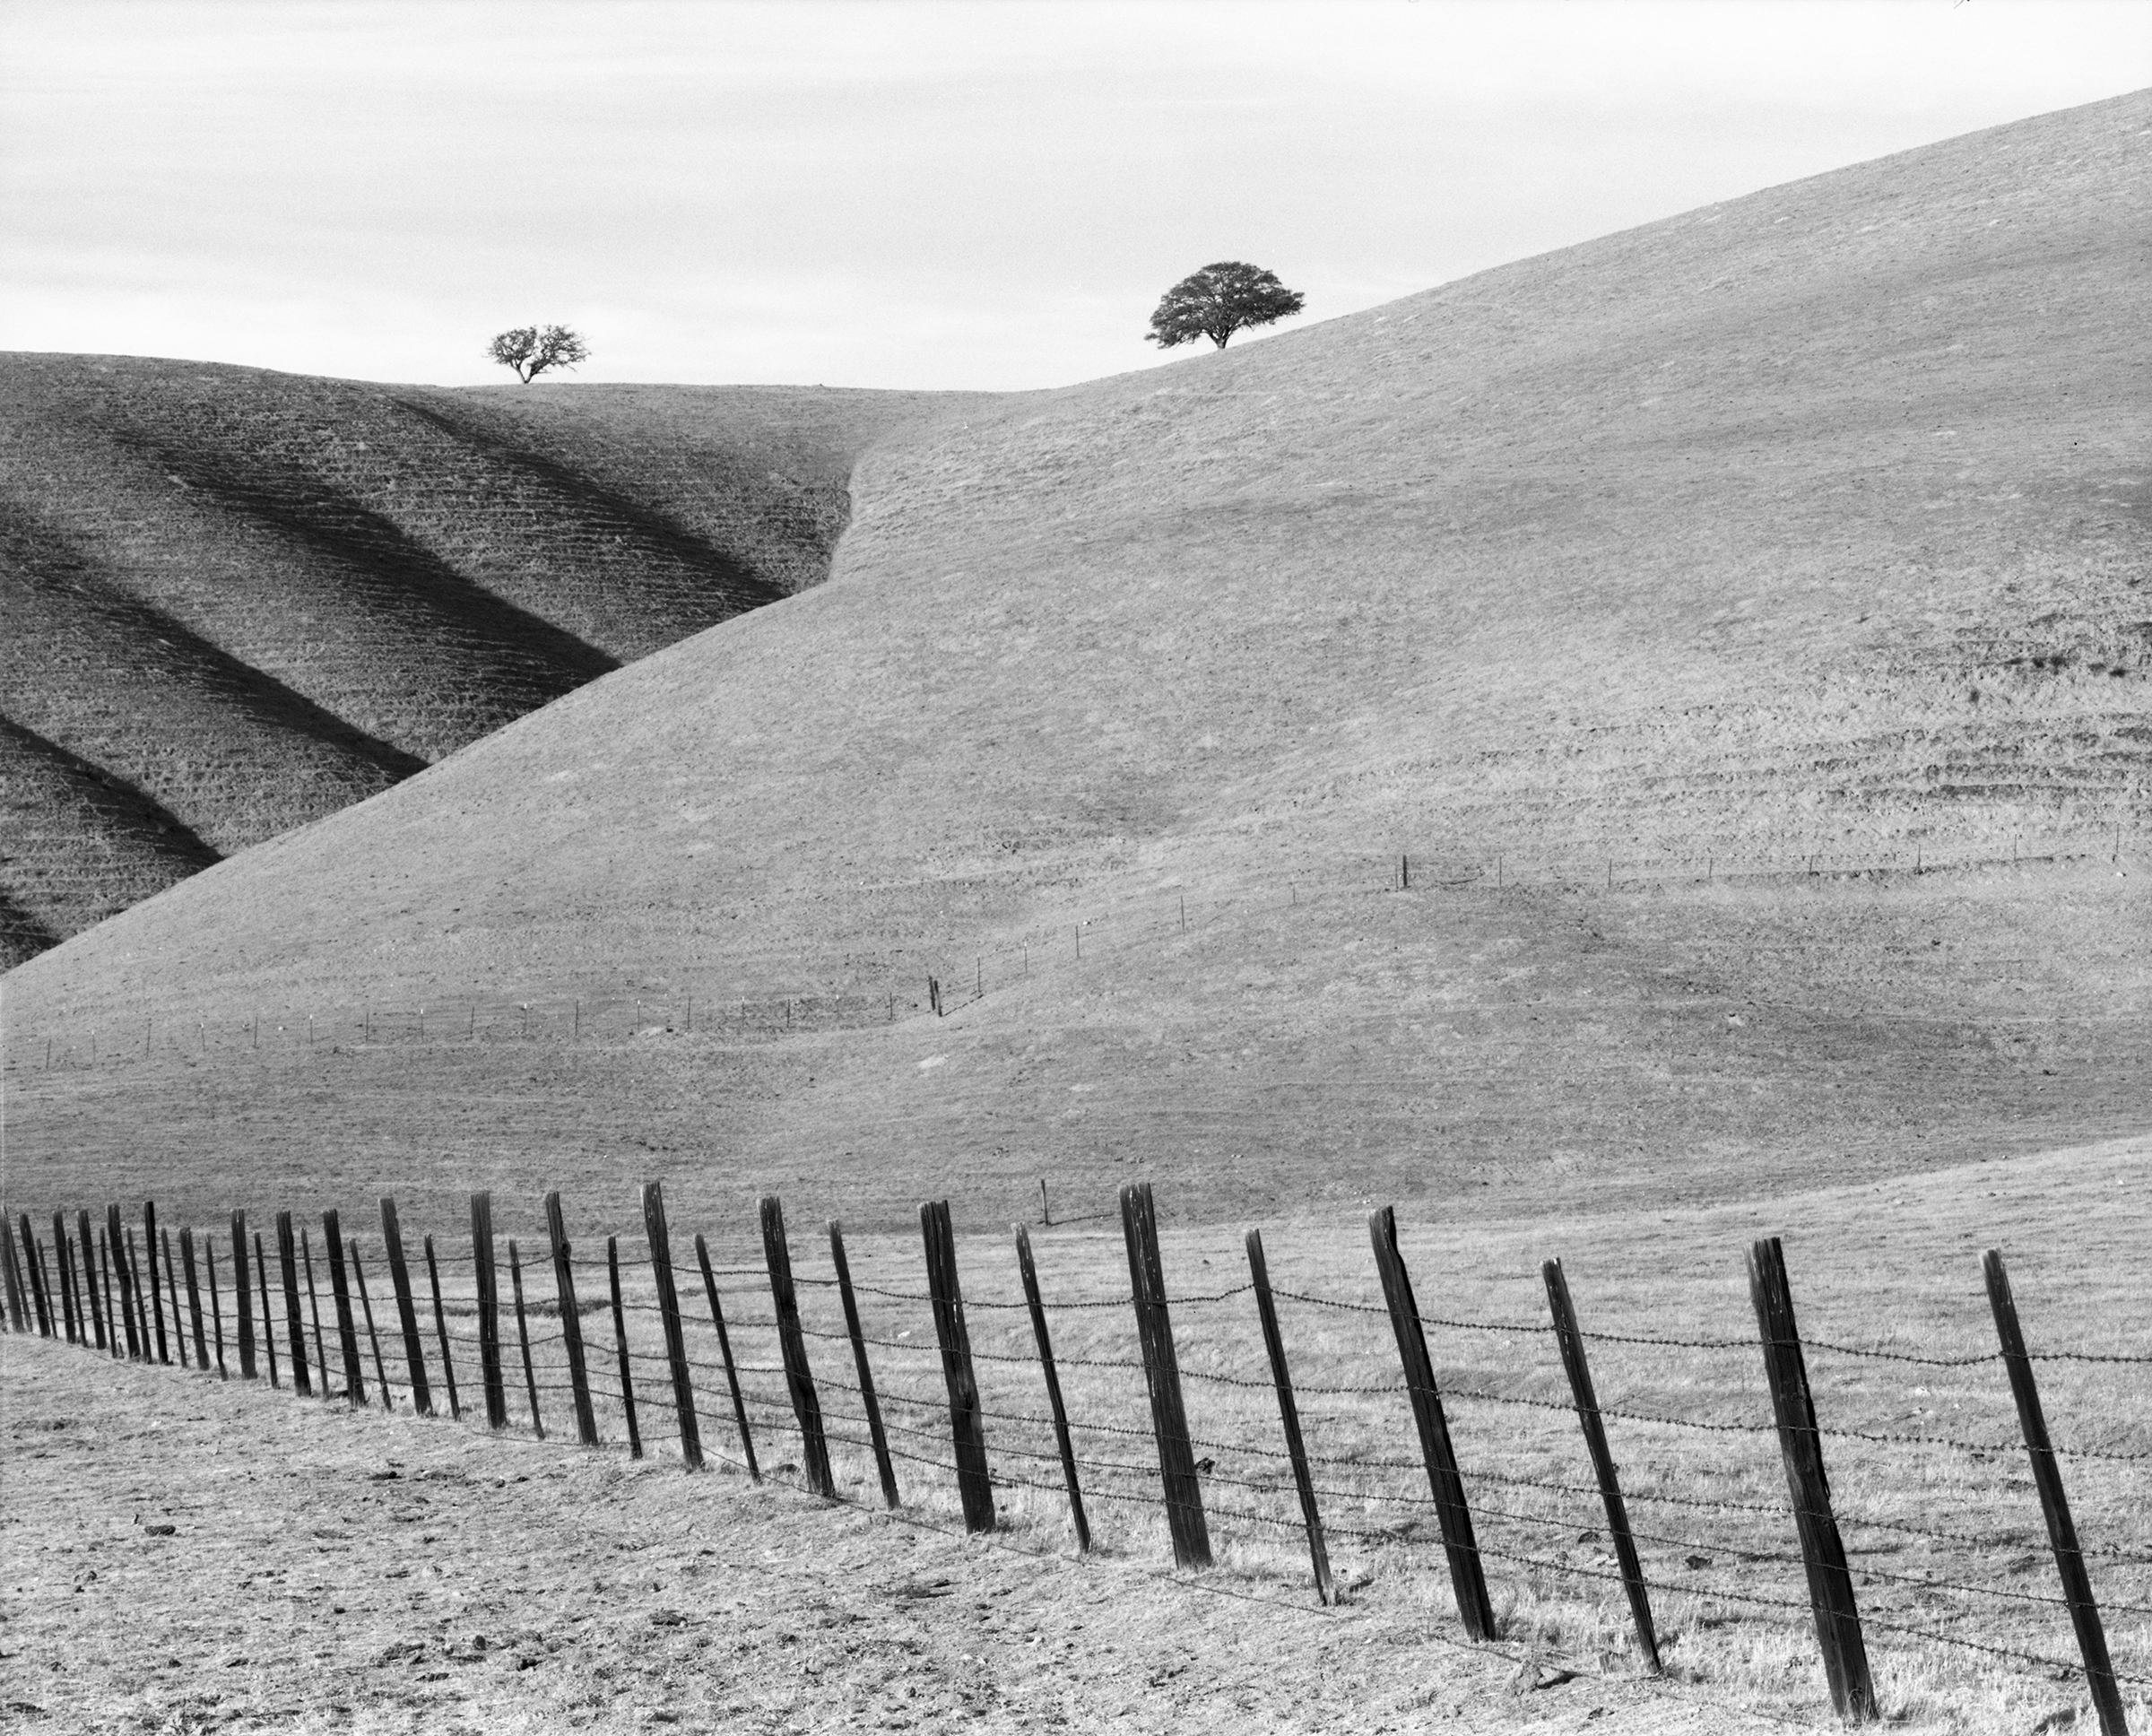 William Lemke - Fence Line and Two Trees along Hwy 25, California